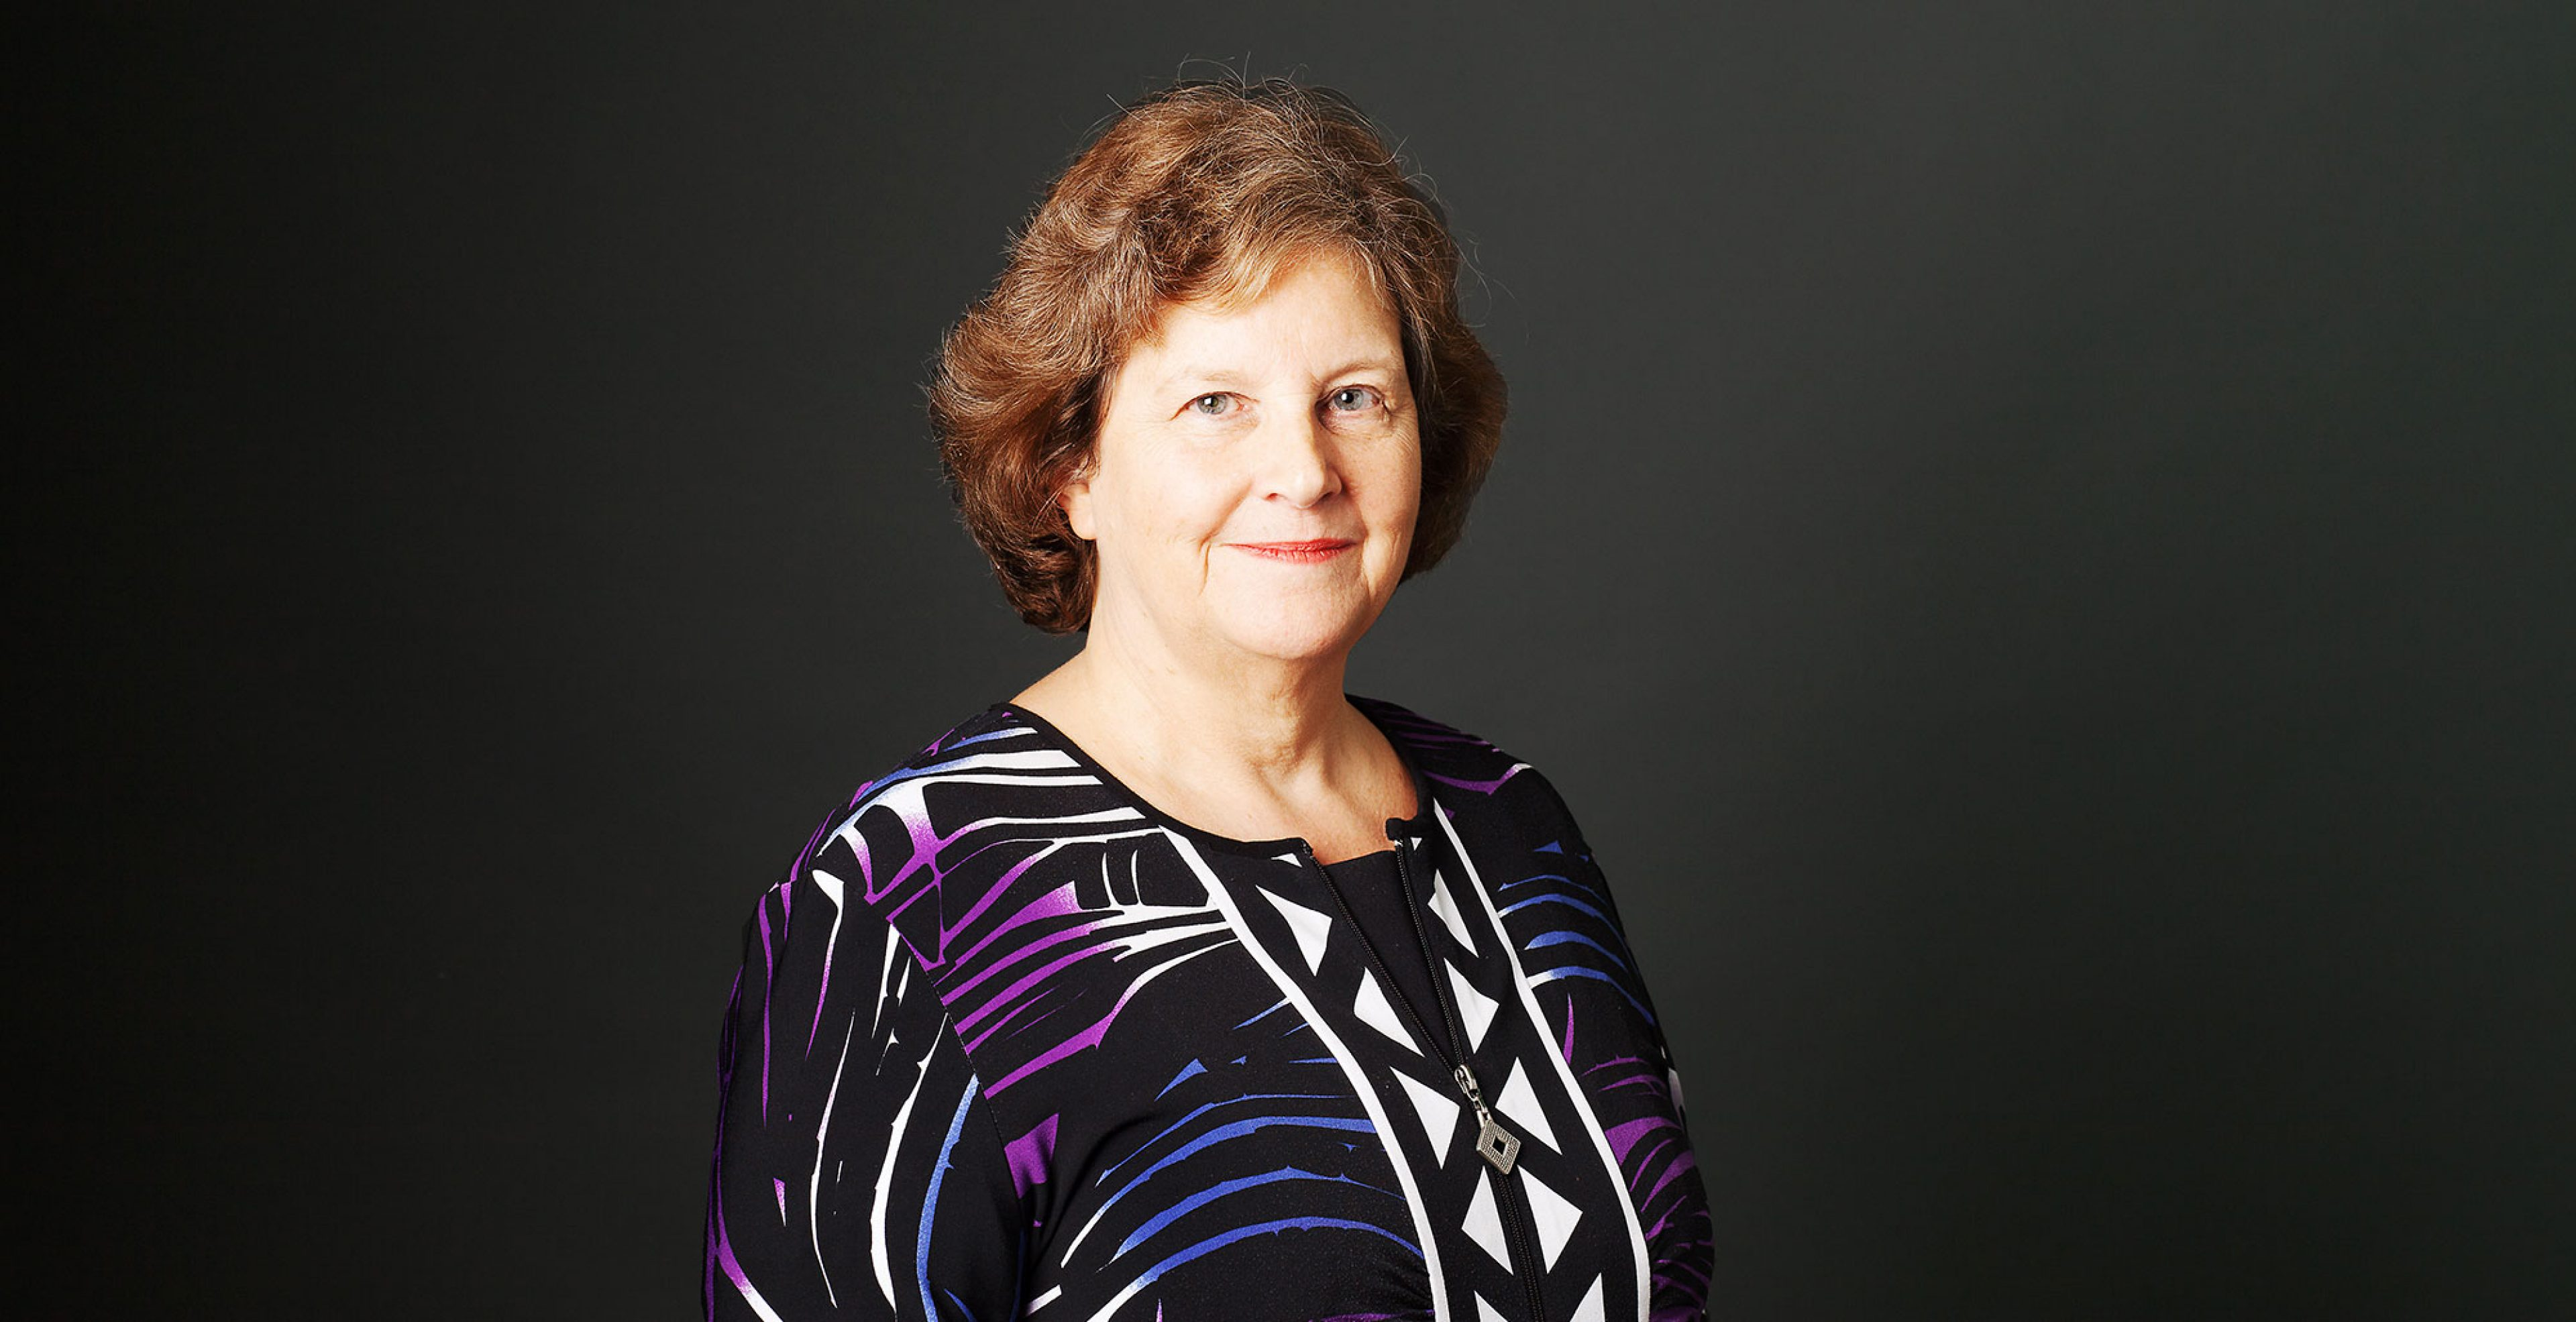 Professor Dame Ann Dowling, chair of the remuneration committee